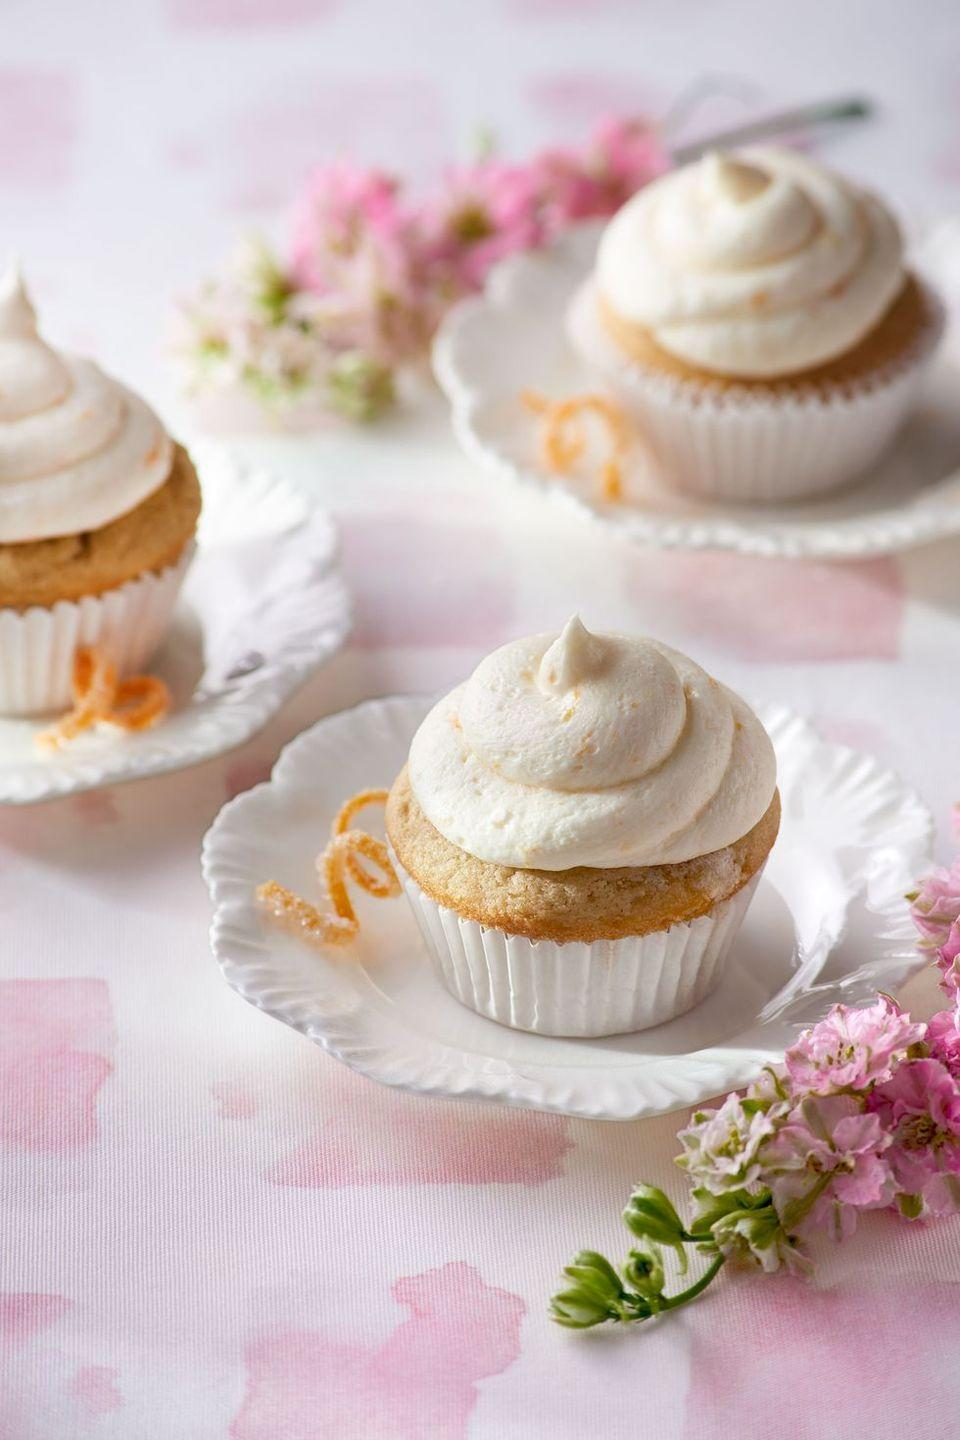 "<p>These unique cupcakes made with Lady Grey tea are the perfect thing to enjoy with a warm beverage on a cold autumn afternoon.</p><p><em><a href=""https://www.countryliving.com/food-drinks/recipes/a37732/lady-grey-cupcakes-with-orange-zest-frosting-recipe/"" rel=""nofollow noopener"" target=""_blank"" data-ylk=""slk:Get the recipe from Country Living »"" class=""link rapid-noclick-resp"">Get the recipe from Country Living »</a></em></p>"